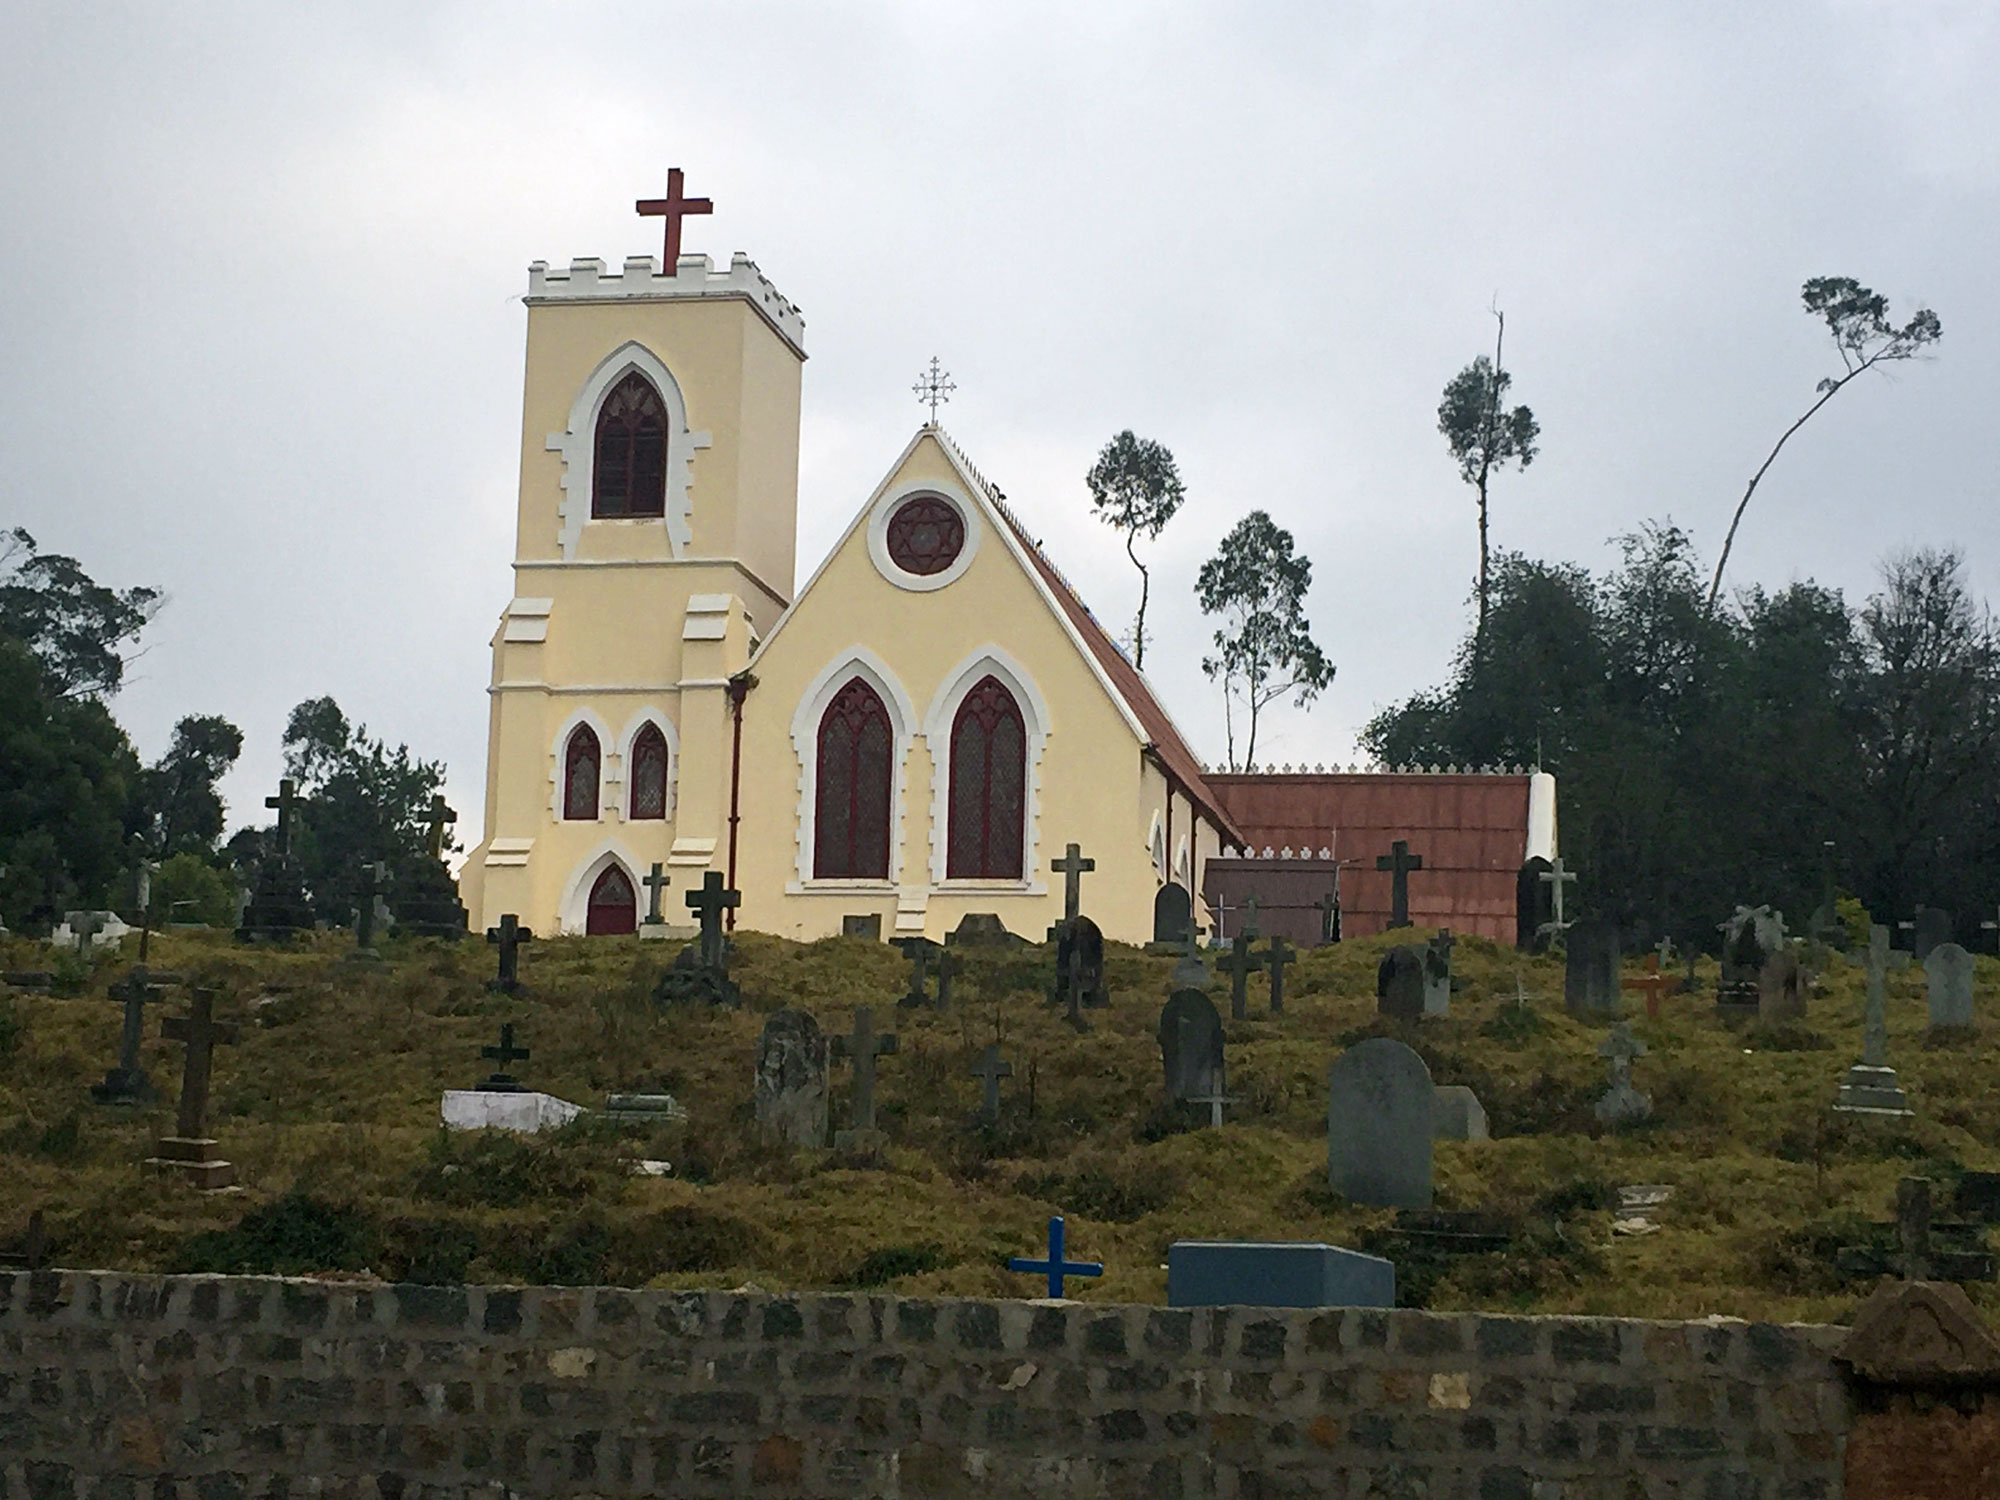 The 1870 St. Thomas church in Ooty.